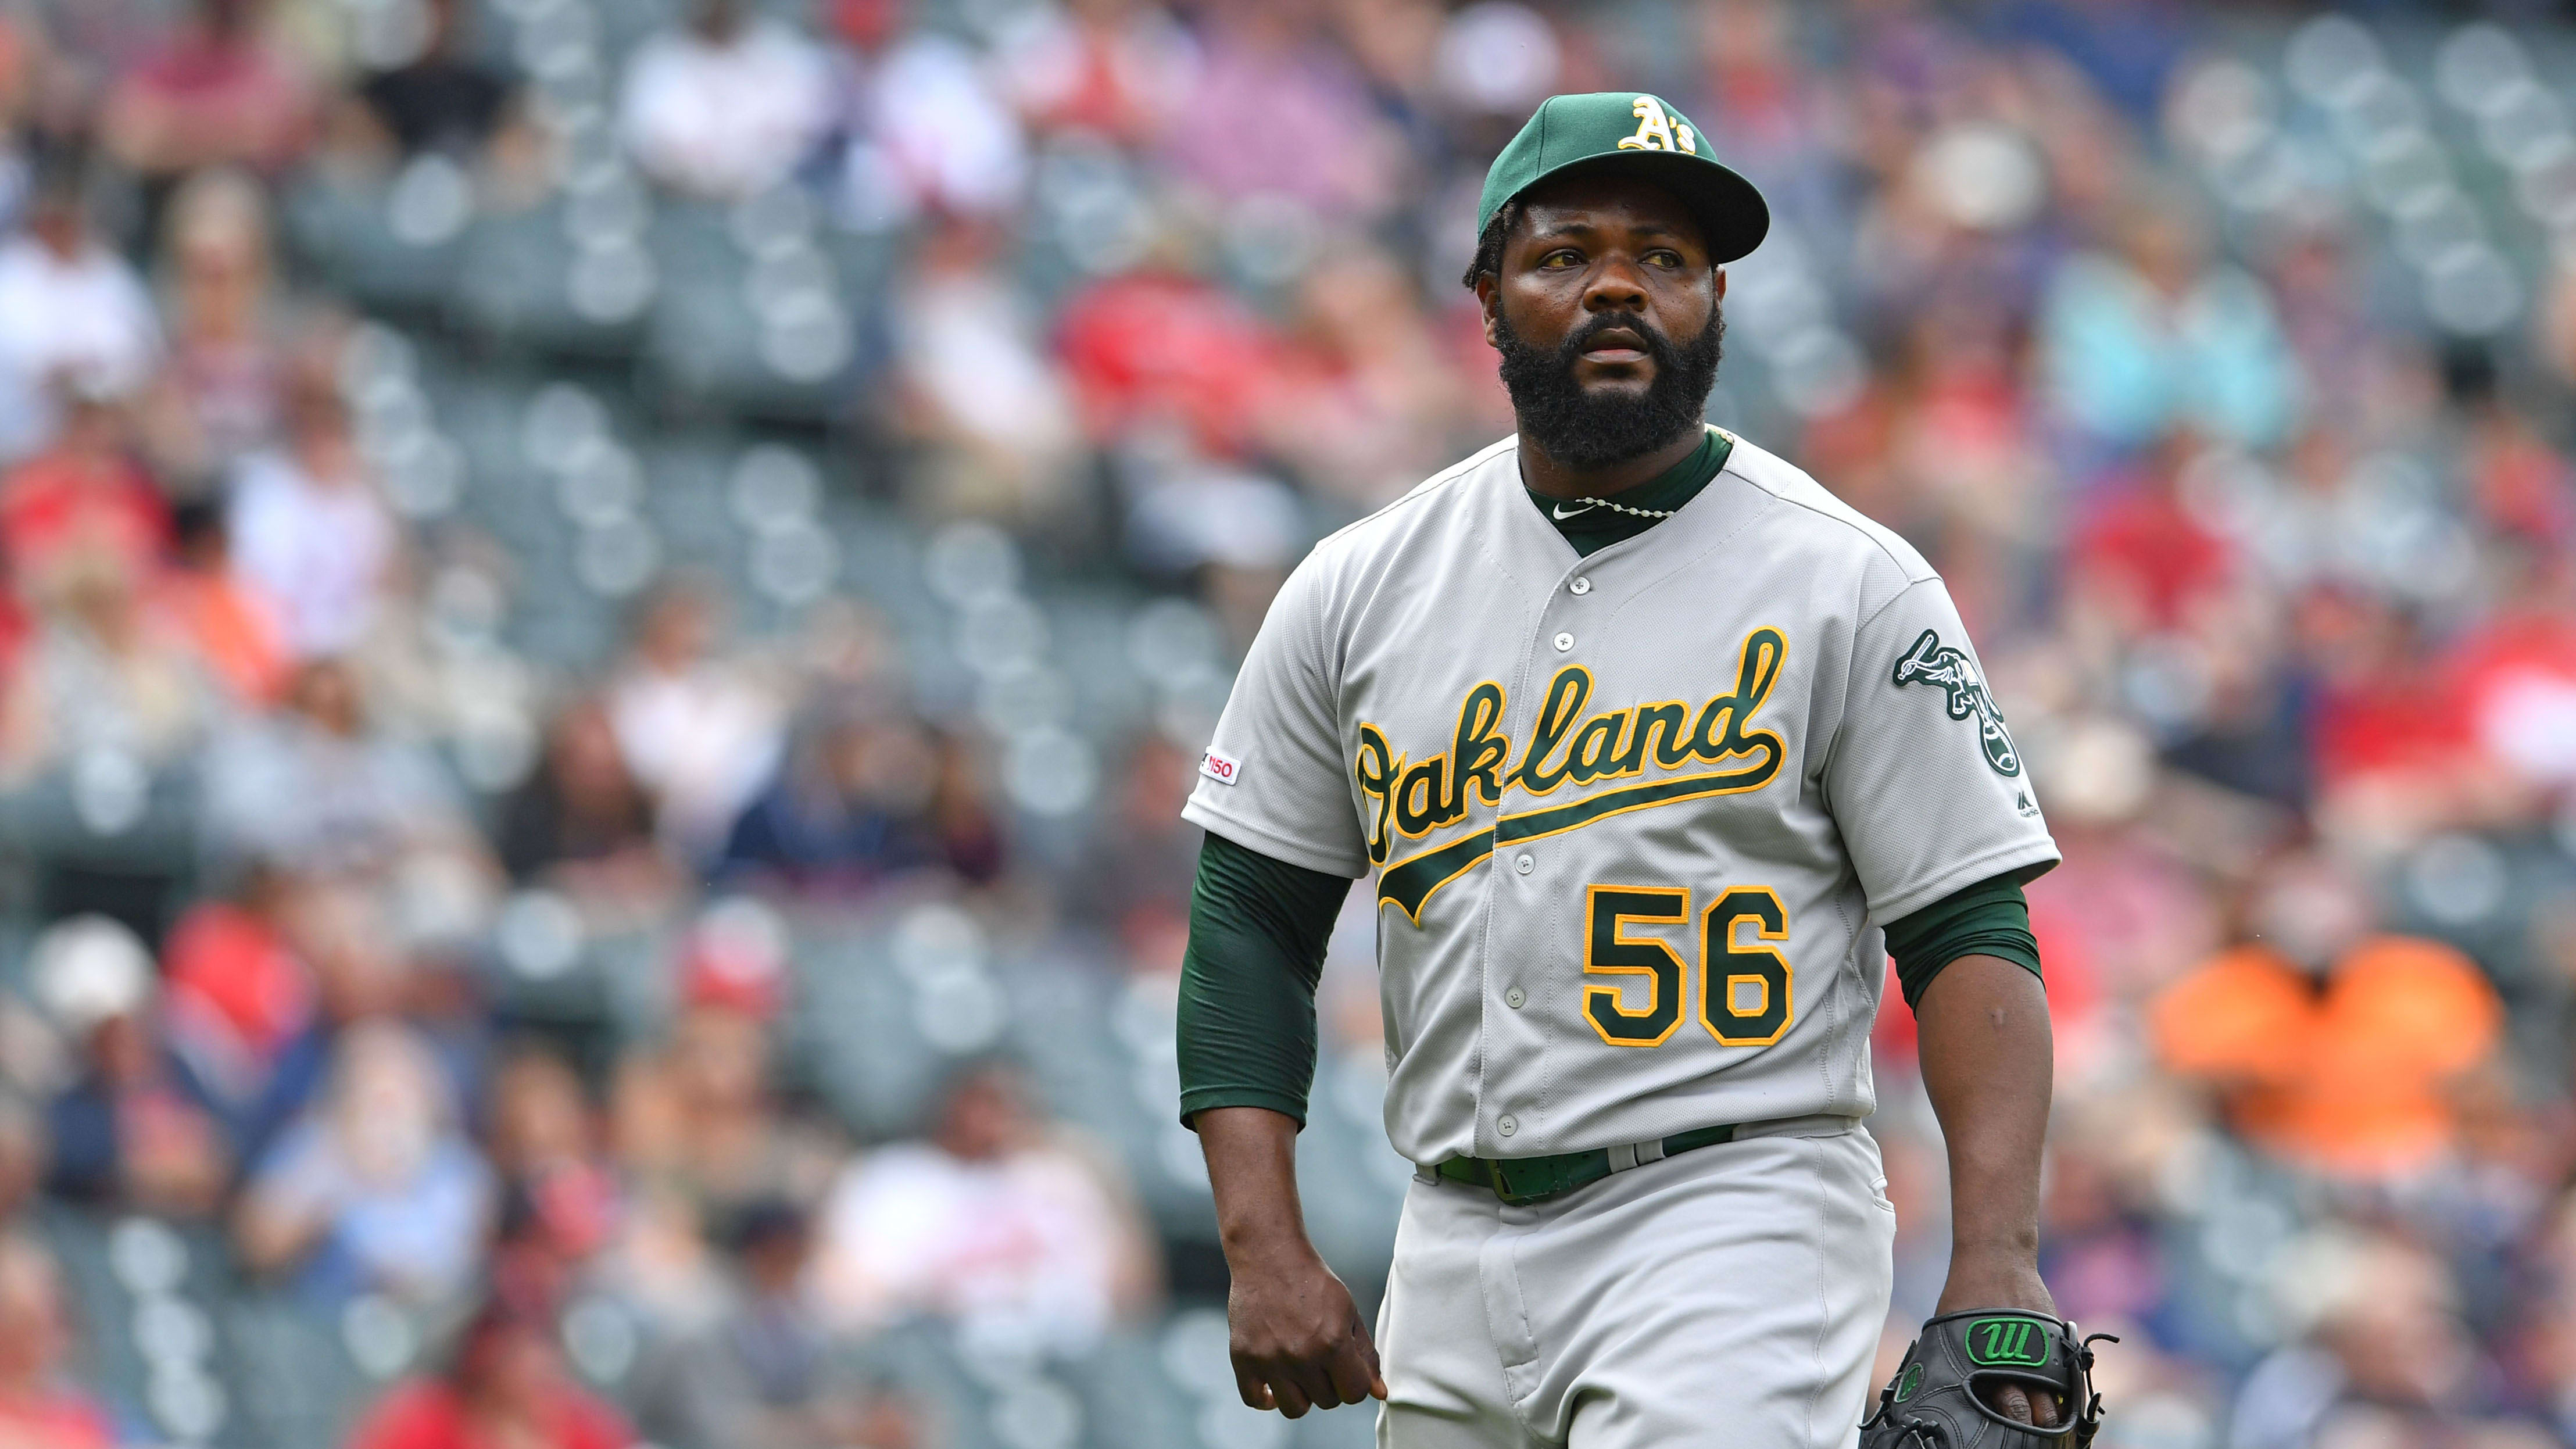 CLEVELAND, OHIO - MAY 22: Relief pitcher Fernando Rodney #56 of the Oakland Athletics leaves the game after giving up a two run home run during the eighth inning against the Cleveland Indians at Progressive Field on May 22, 2019 in Cleveland, Ohio. (Photo by Jason Miller/Getty Images)